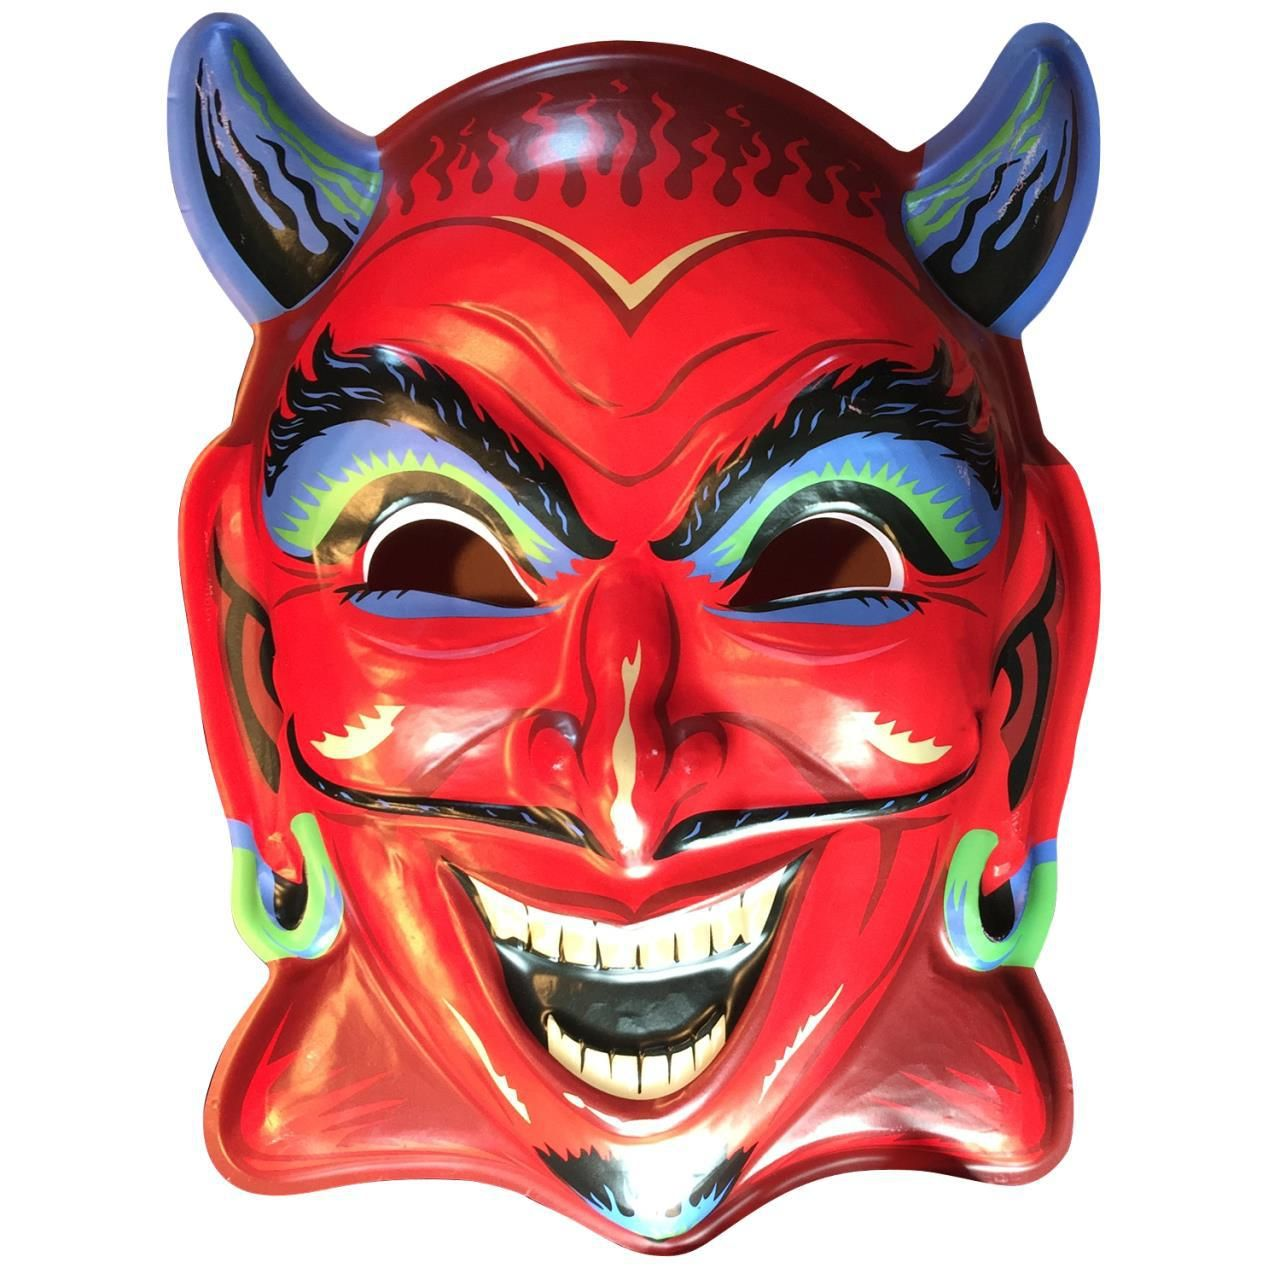 Fun-House Devil Vac-tastic Plastic Mask | Plastic mask, Fun house ...